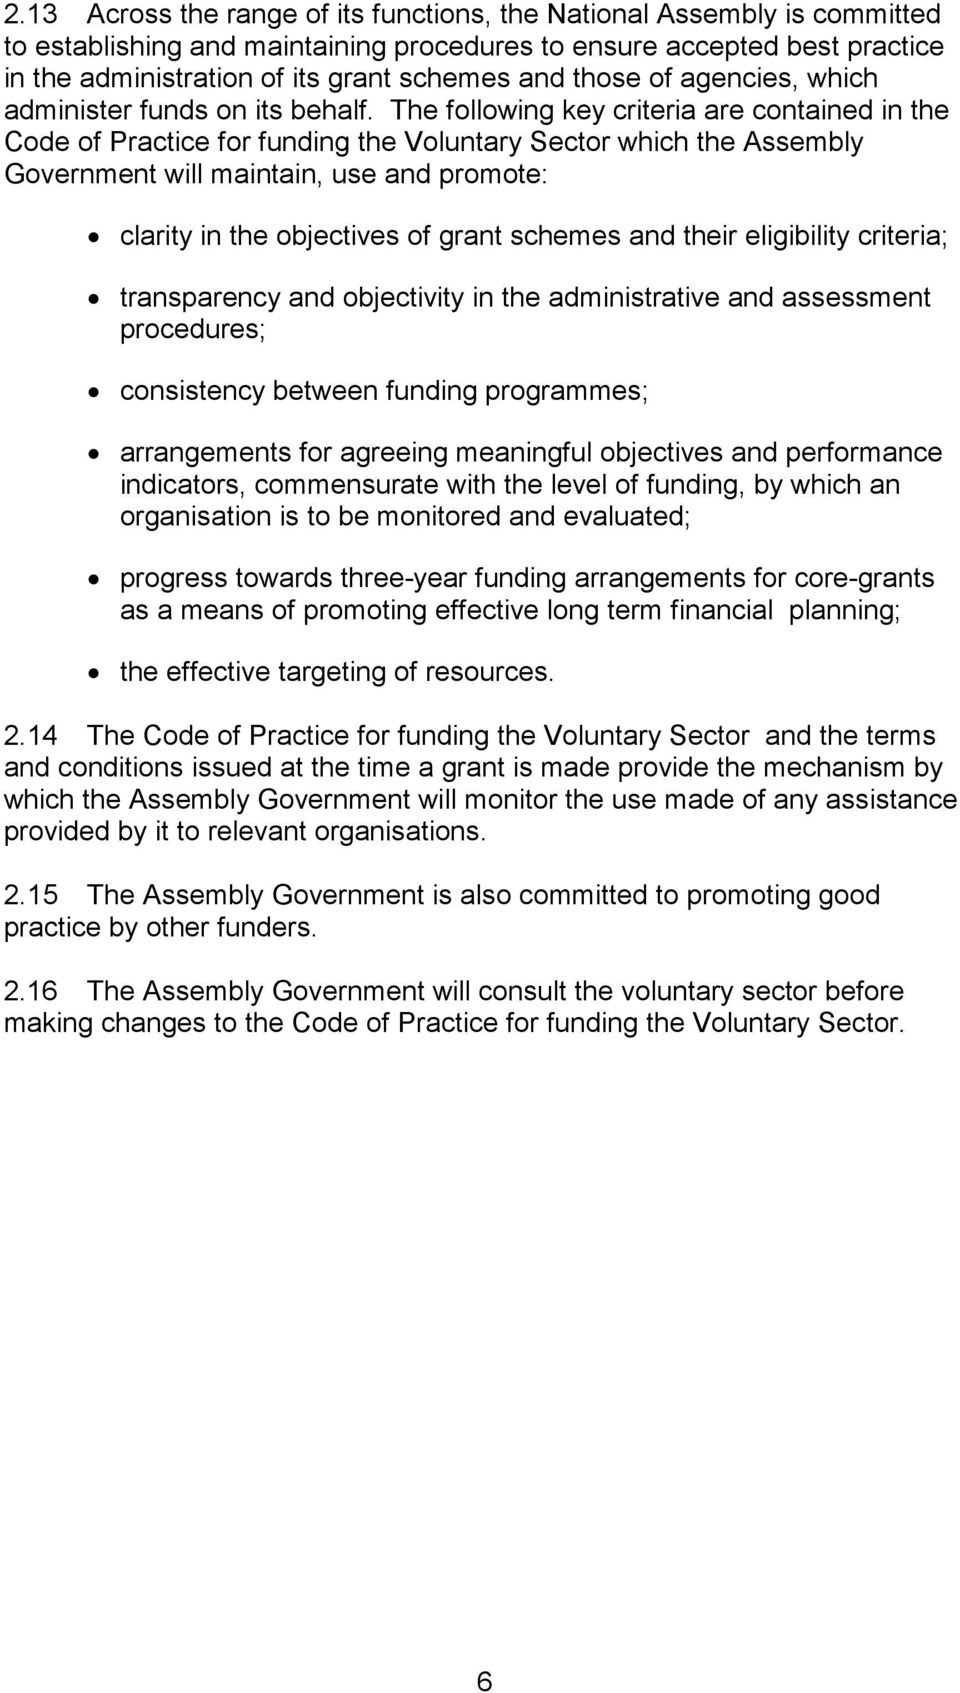 The following key criteria are contained in the Code of Practice for funding the Voluntary Sector which the Assembly Government will maintain, use and promote: clarity in the objectives of grant